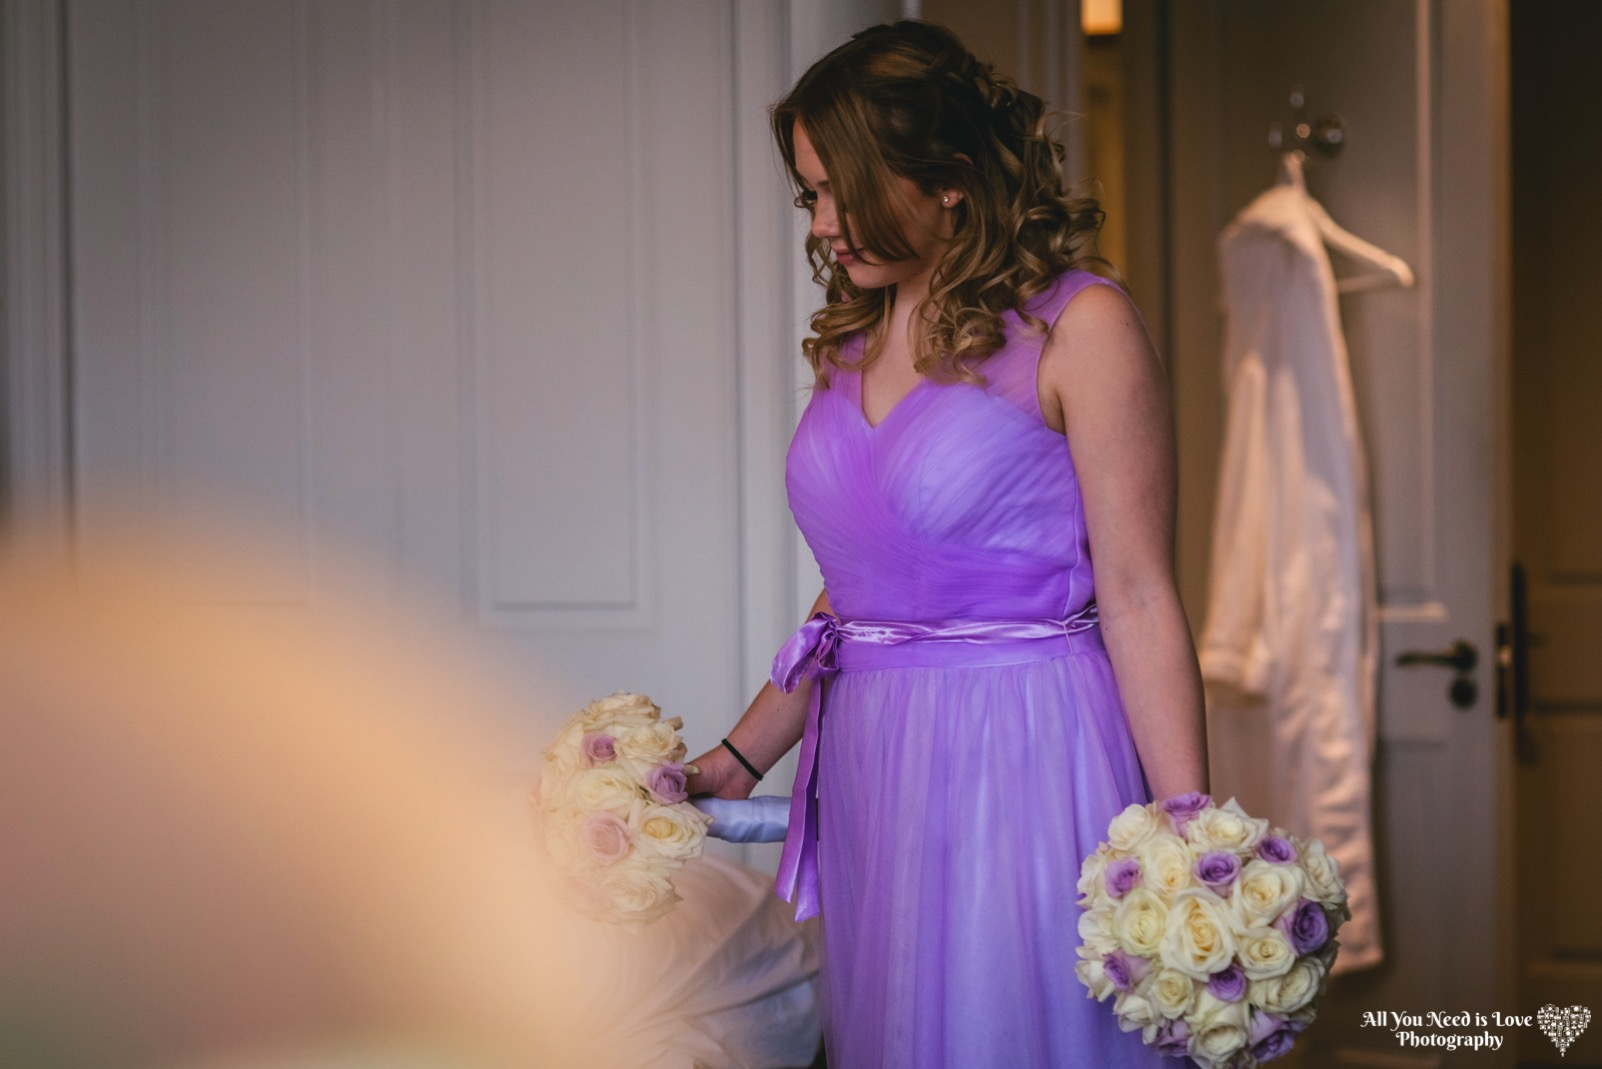 Bridal Photography in York